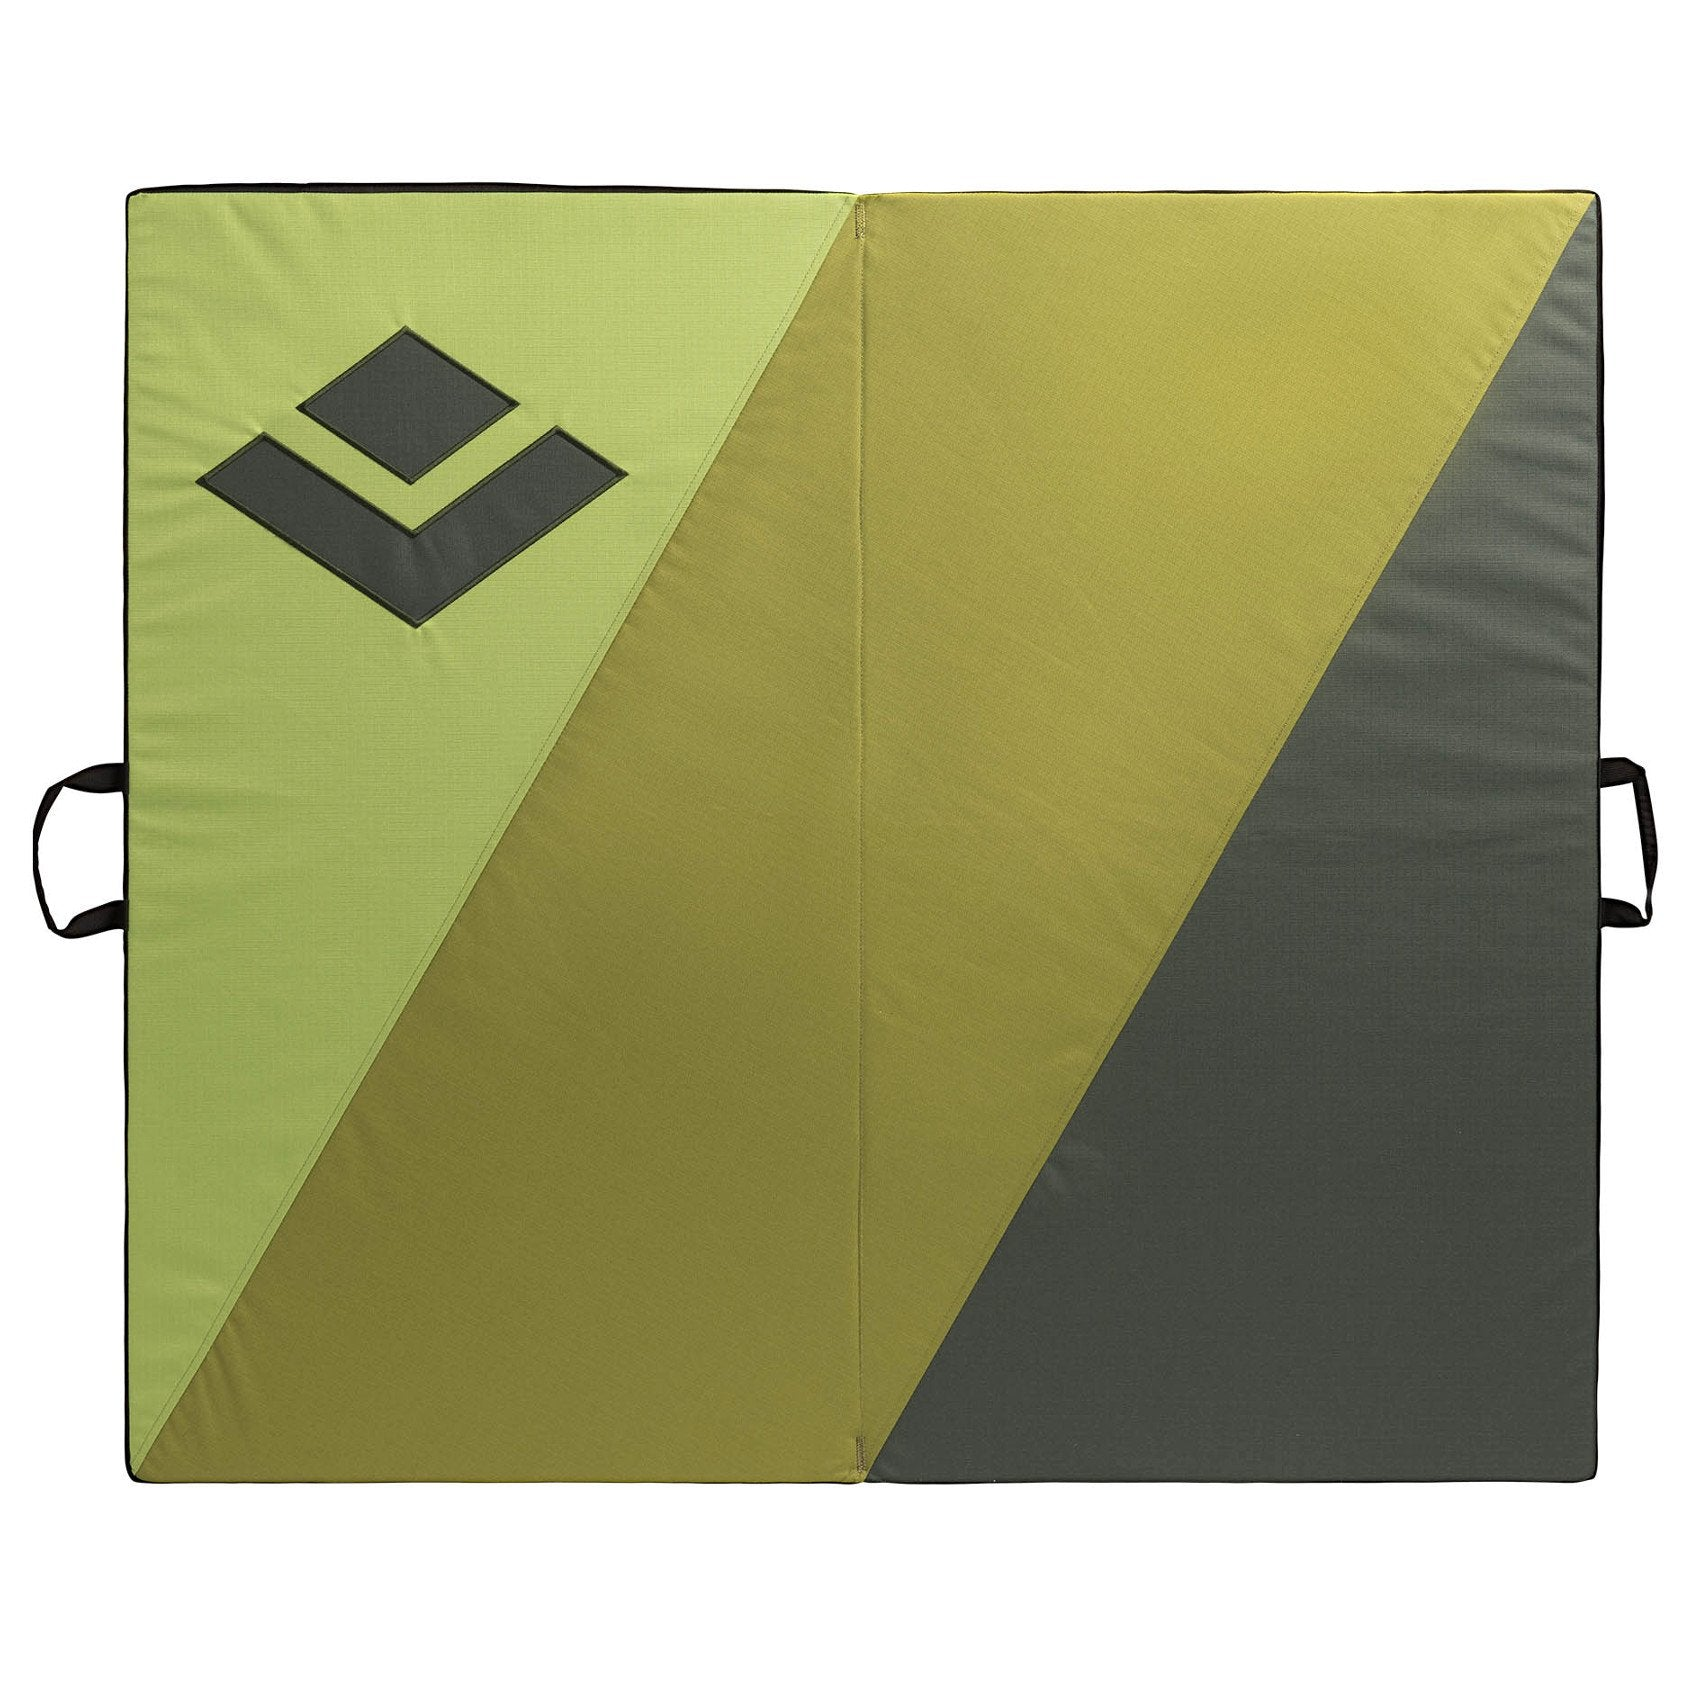 Black Diamond Impact bouldering pad, close up of logo and 3 stripe design detail